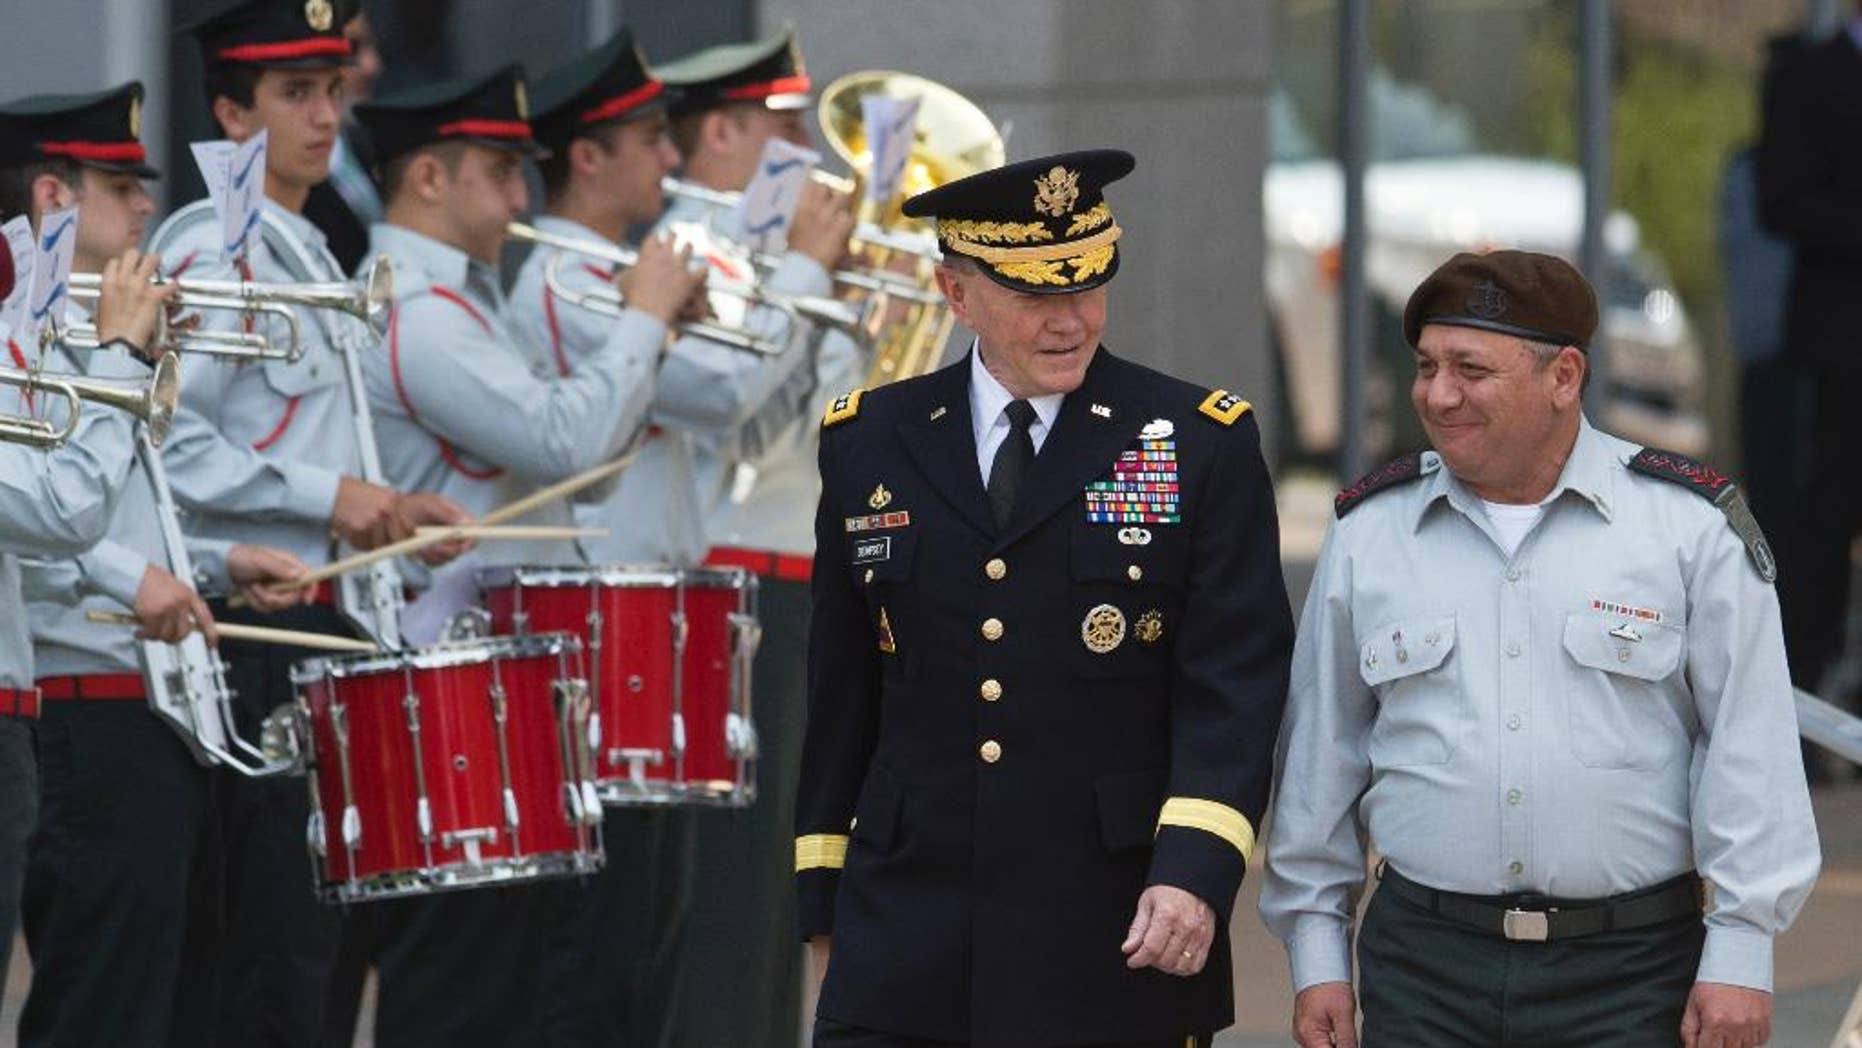 Outgoing Joint Chiefs Chairman Gen. Martin Dempsey, left,  and Israeli Chief of Staff Lt. Gen. Gadi Eizenkot review an honor guard during a welcoming ceremony in a military base in Tel Aviv, Israel, Tuesday, June 9, 2015. The Chairman of the U.S. Joint Chiefs of Staff General Martin E. Dempsey landed on Monday evening in Israel for an official visit. (AP Photo/Ariel Schalit)